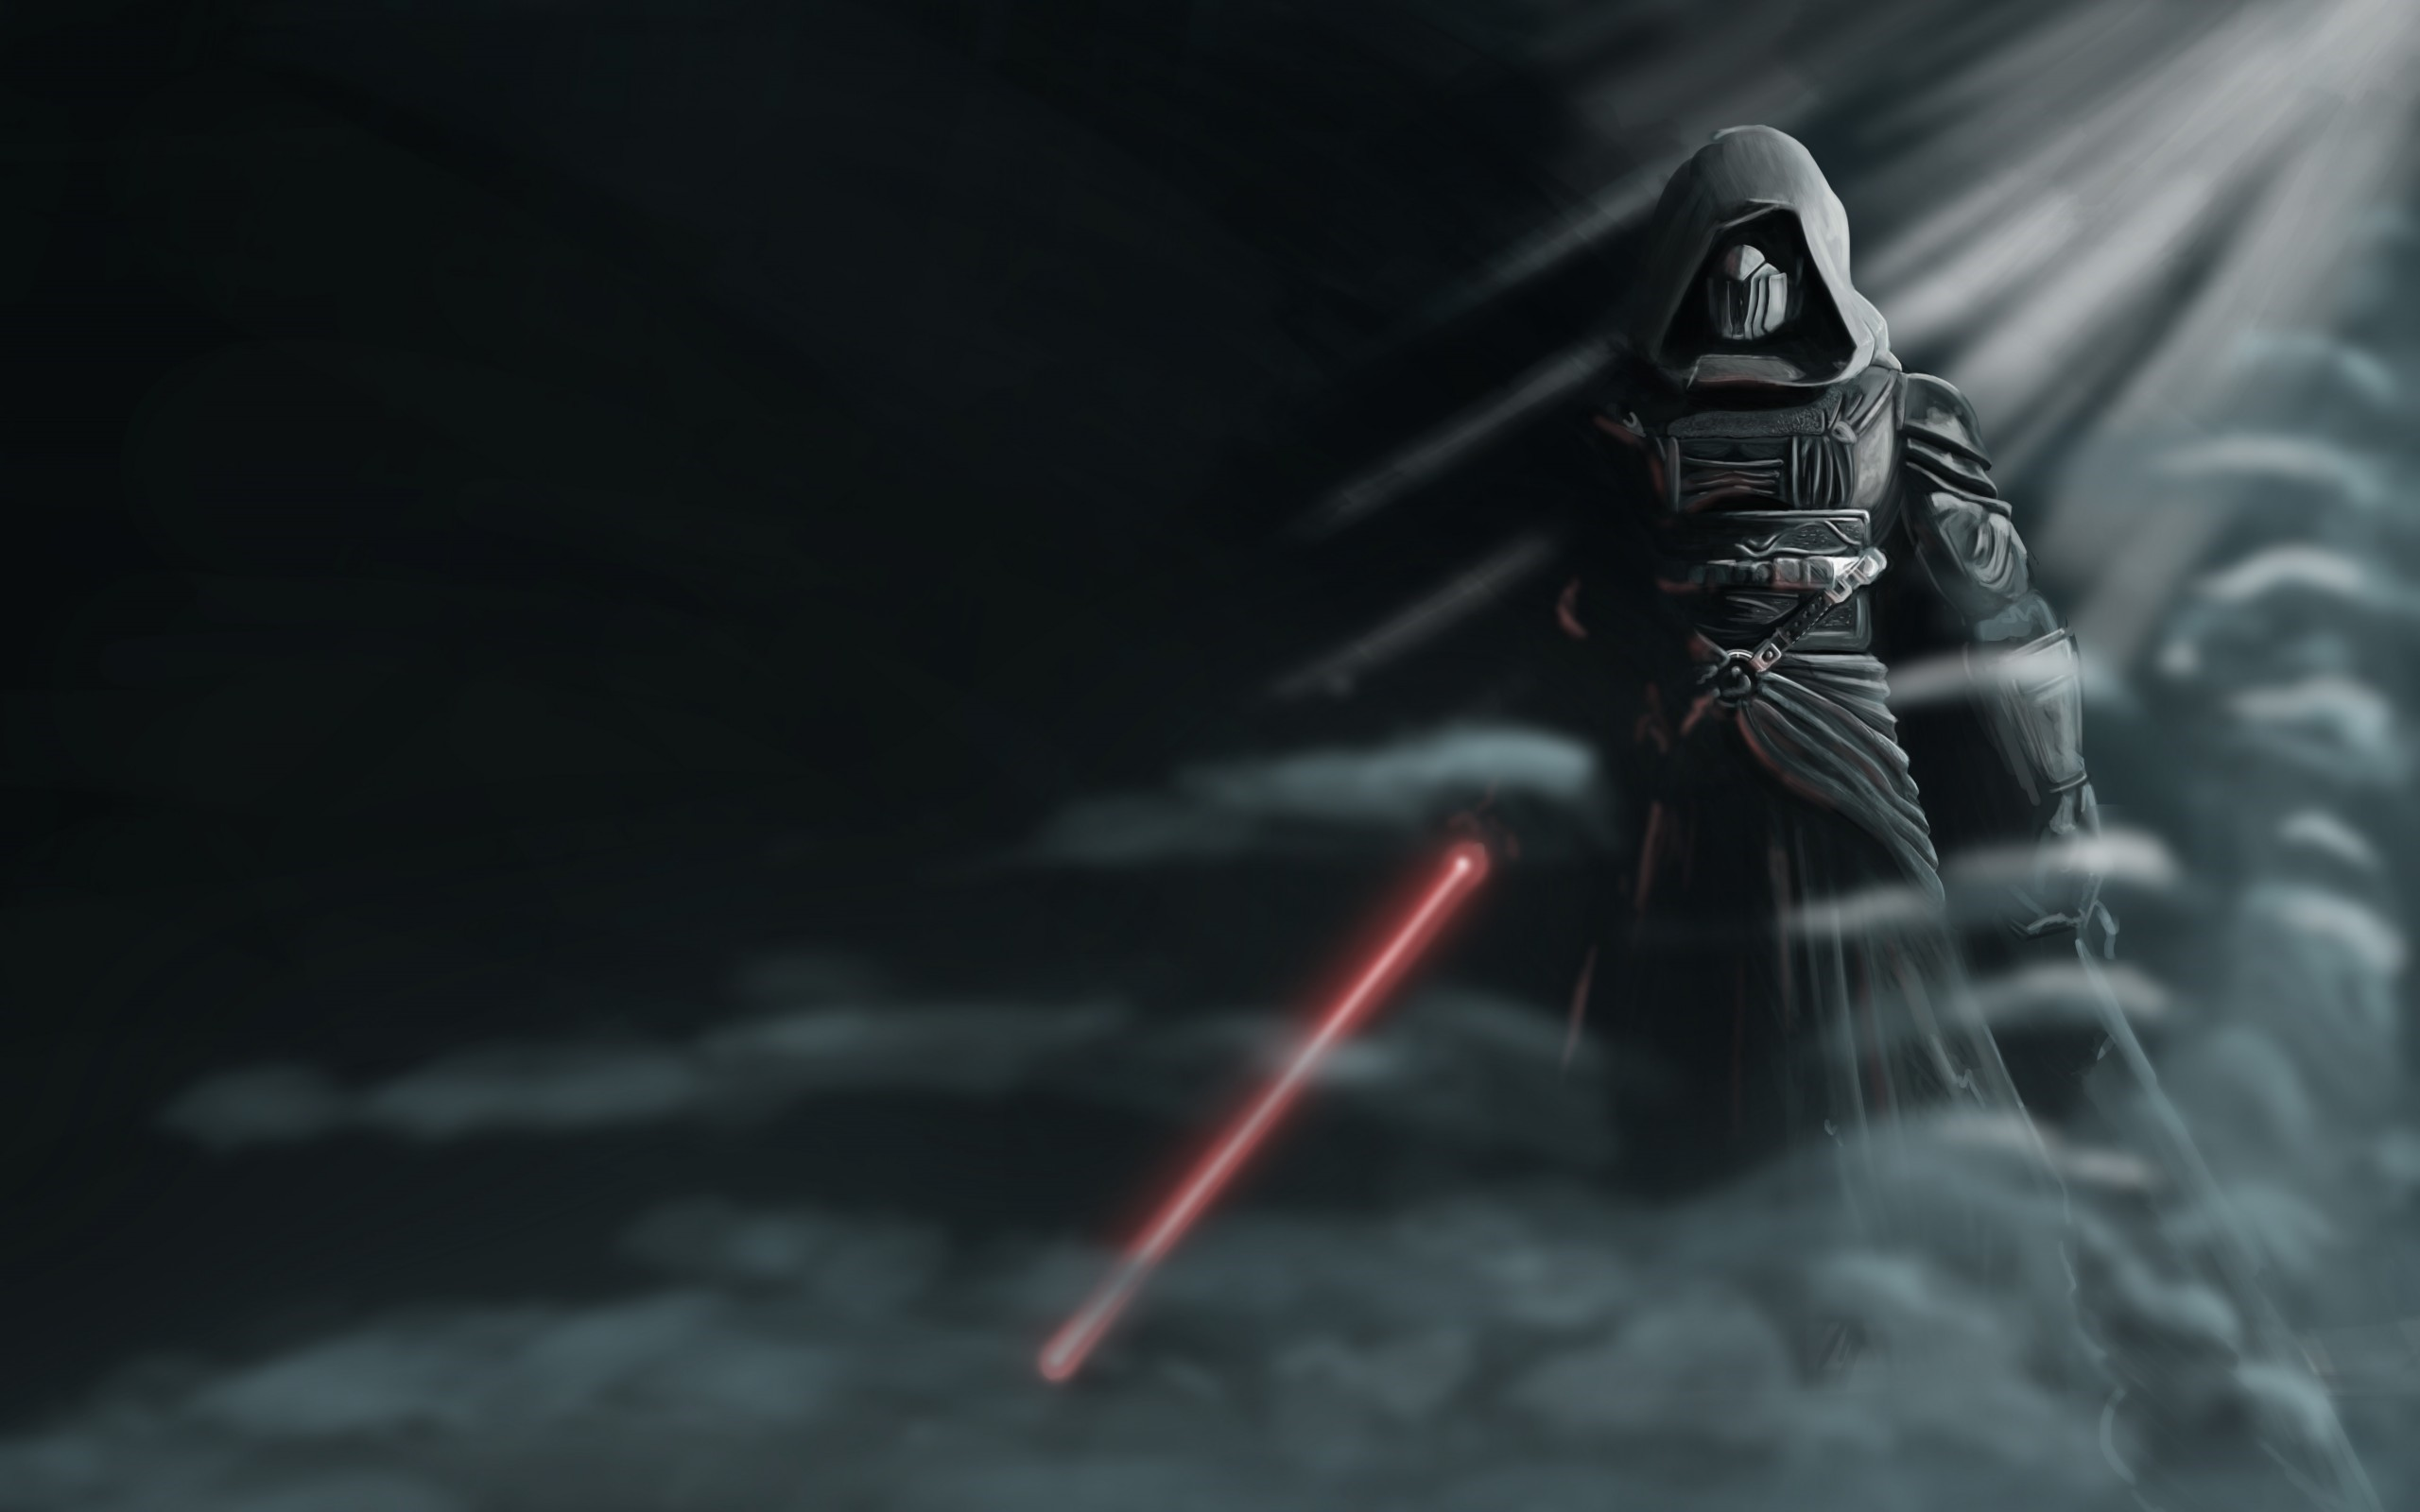 … darth vader wallpaper best images collections hd for gadget …